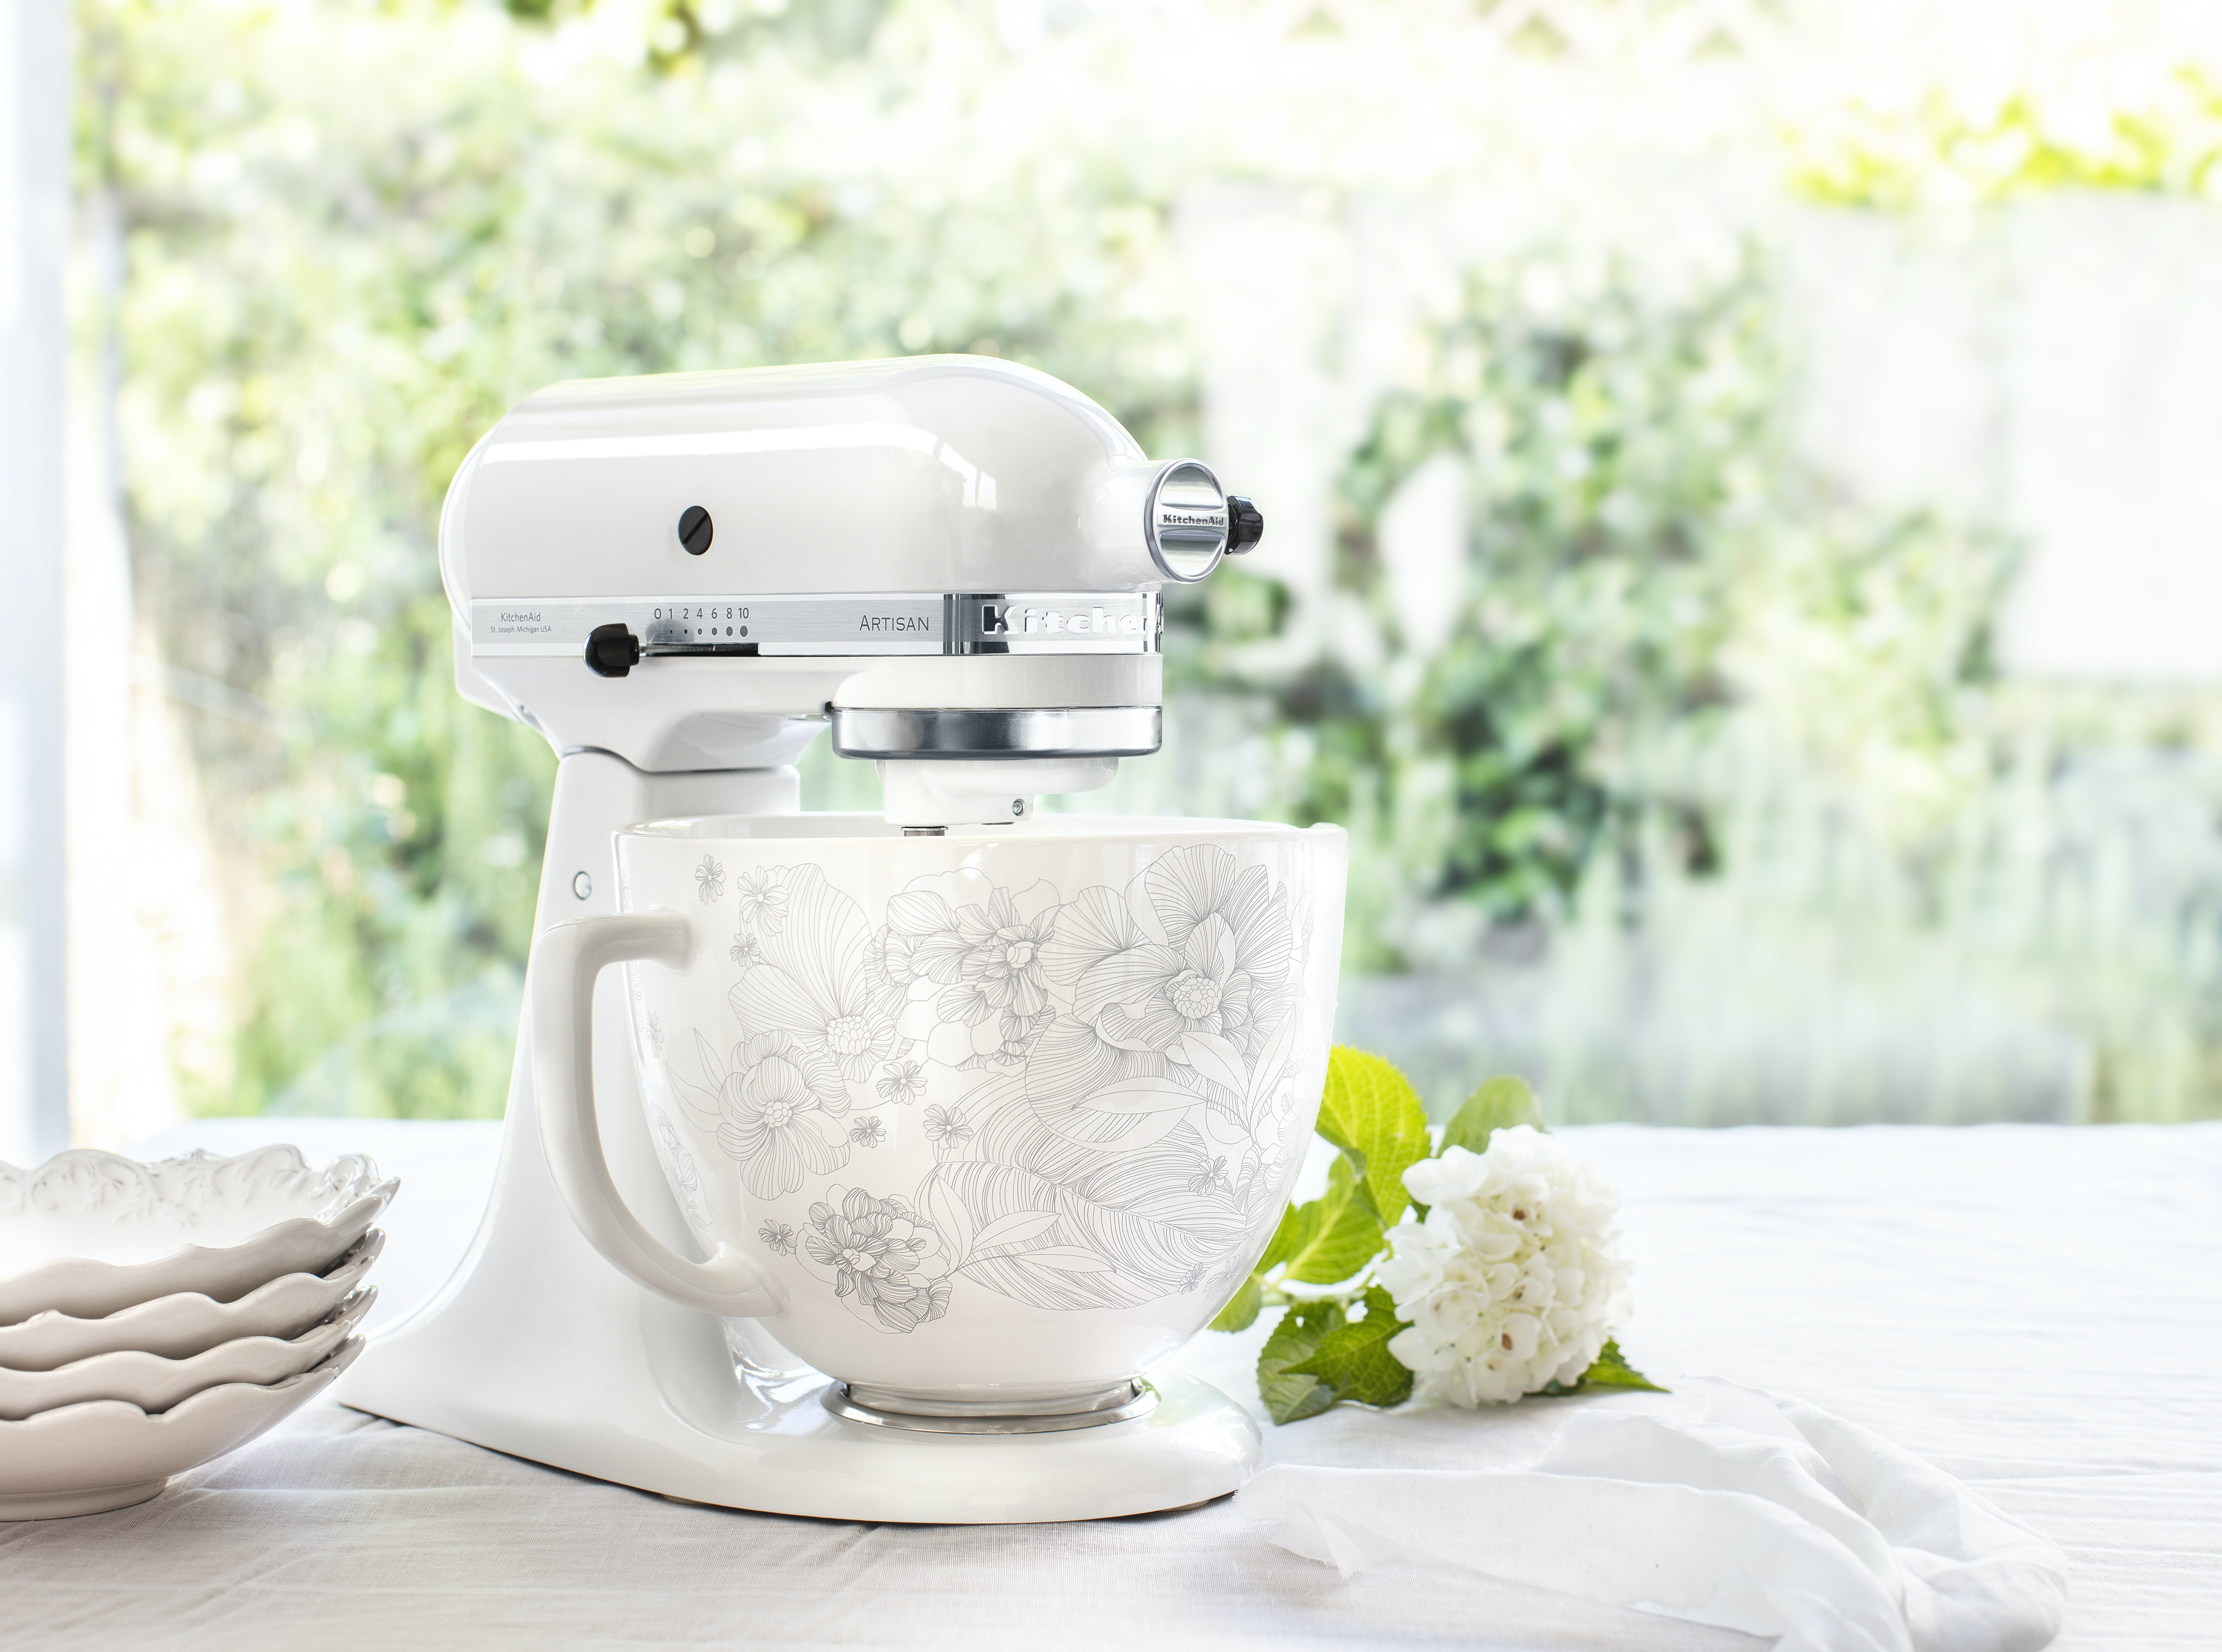 Kitchenaid S New Ceramic Mixing Bowls For Their Stand Mixers